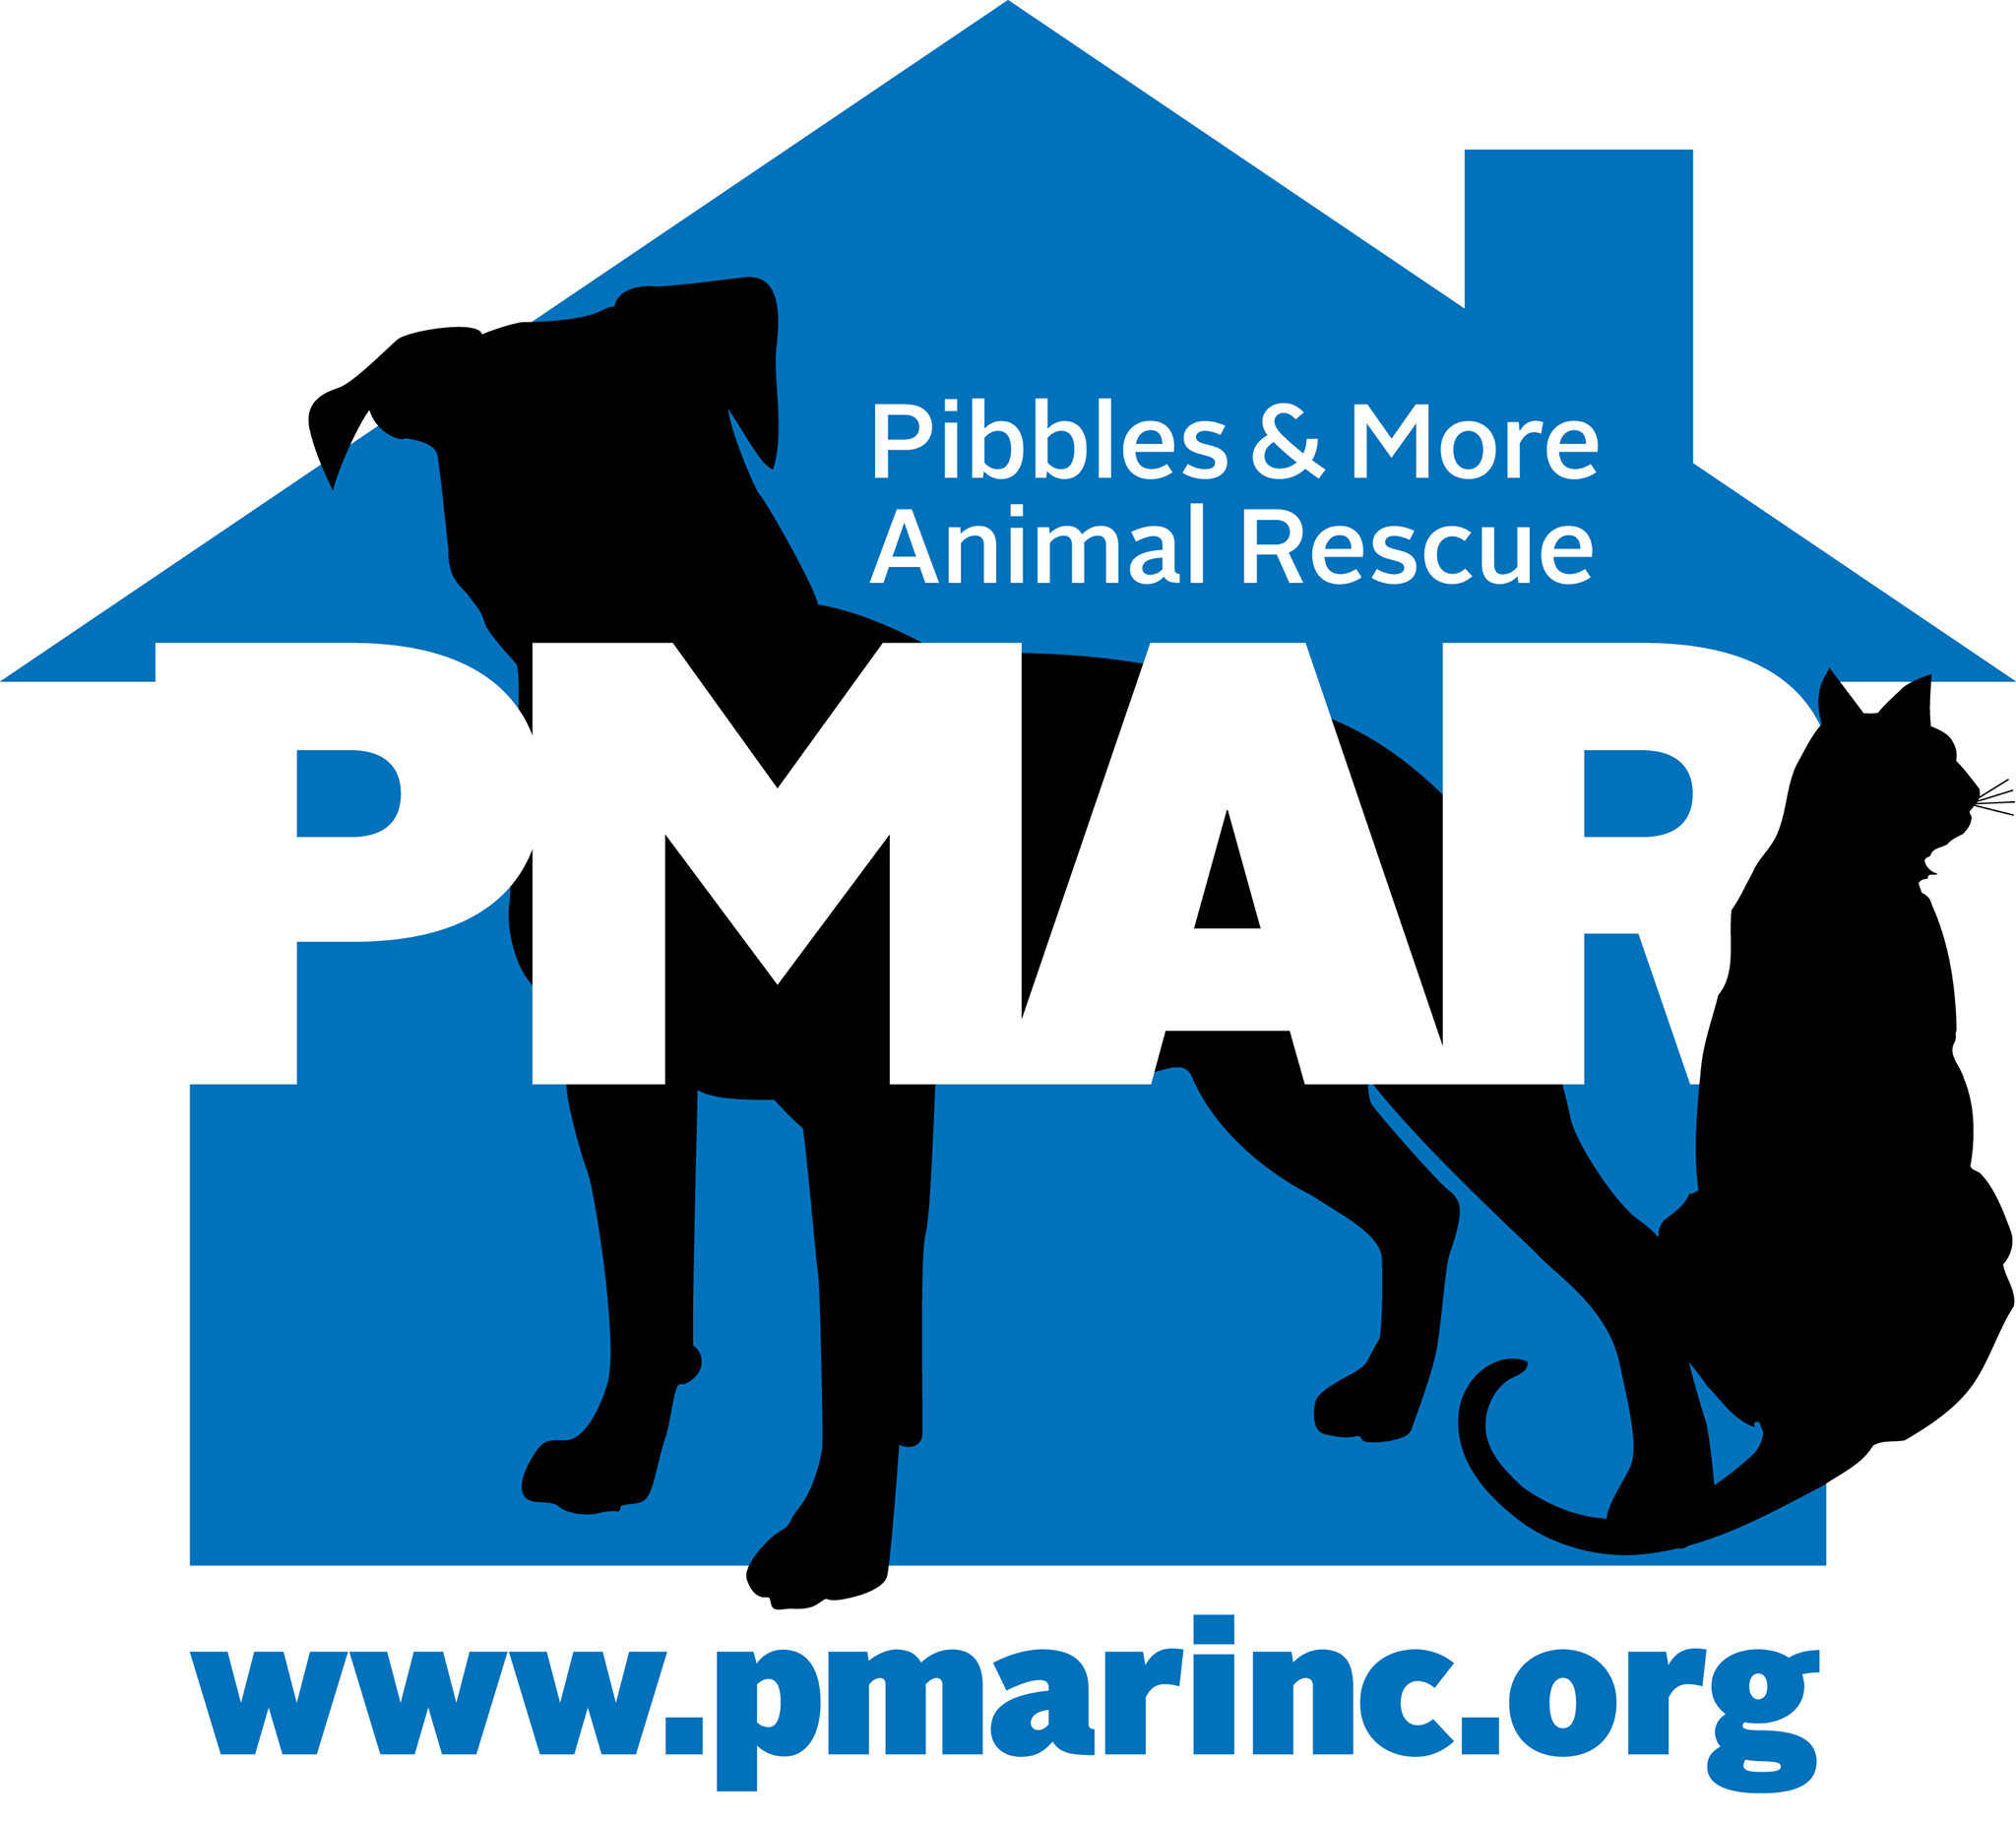 Pets for Adoption at Pibbles & More Animal Rescue, in